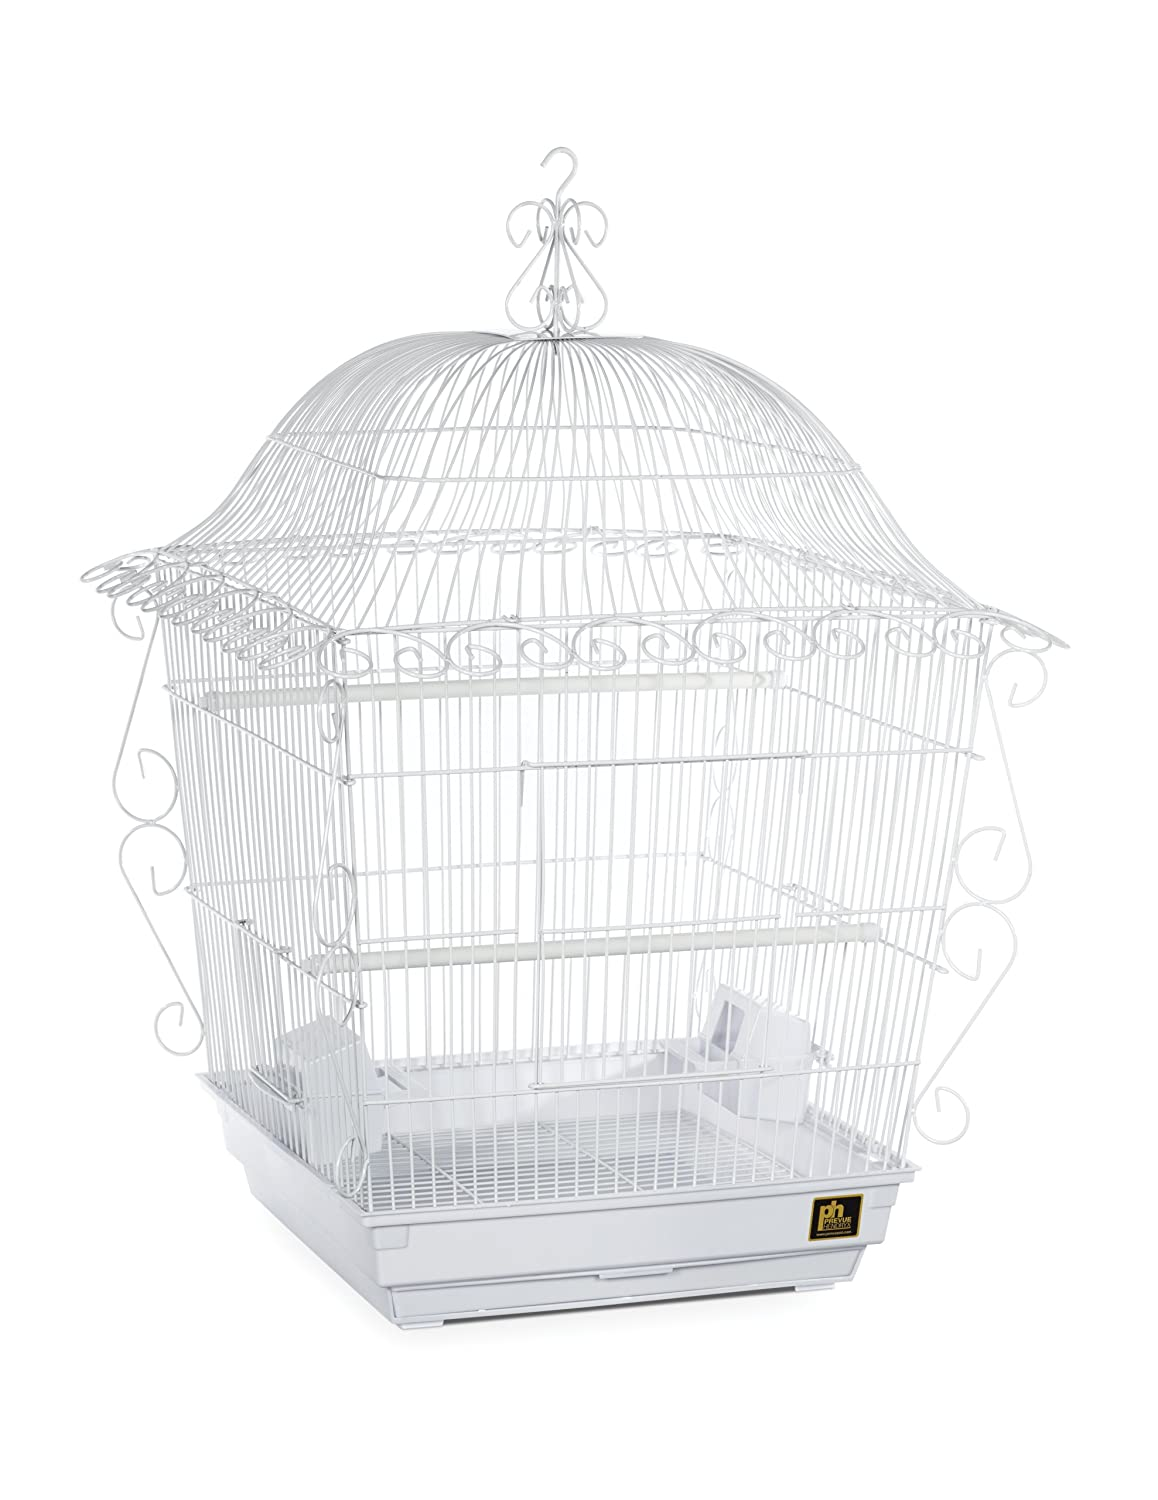 Prevue Jumbo Scrollwork Bird Cage Prevue Pet Products Inc. 220BLK